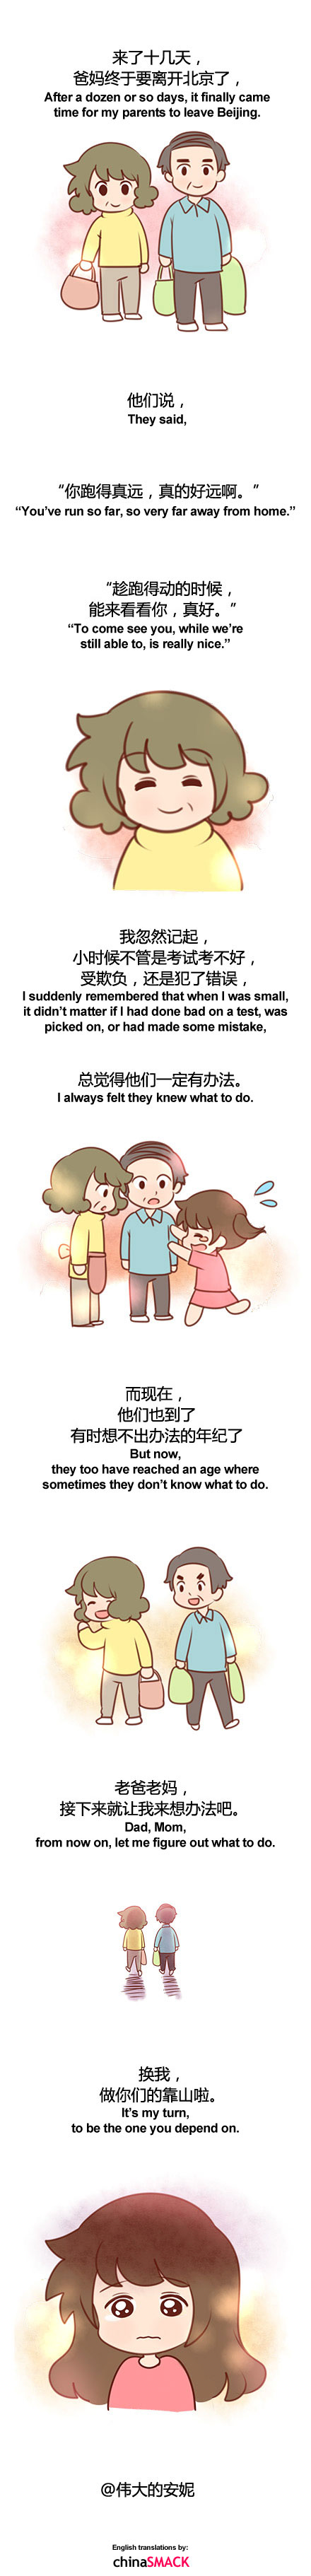 chinese-comic-greatanny-parents-visit-06-english-translation